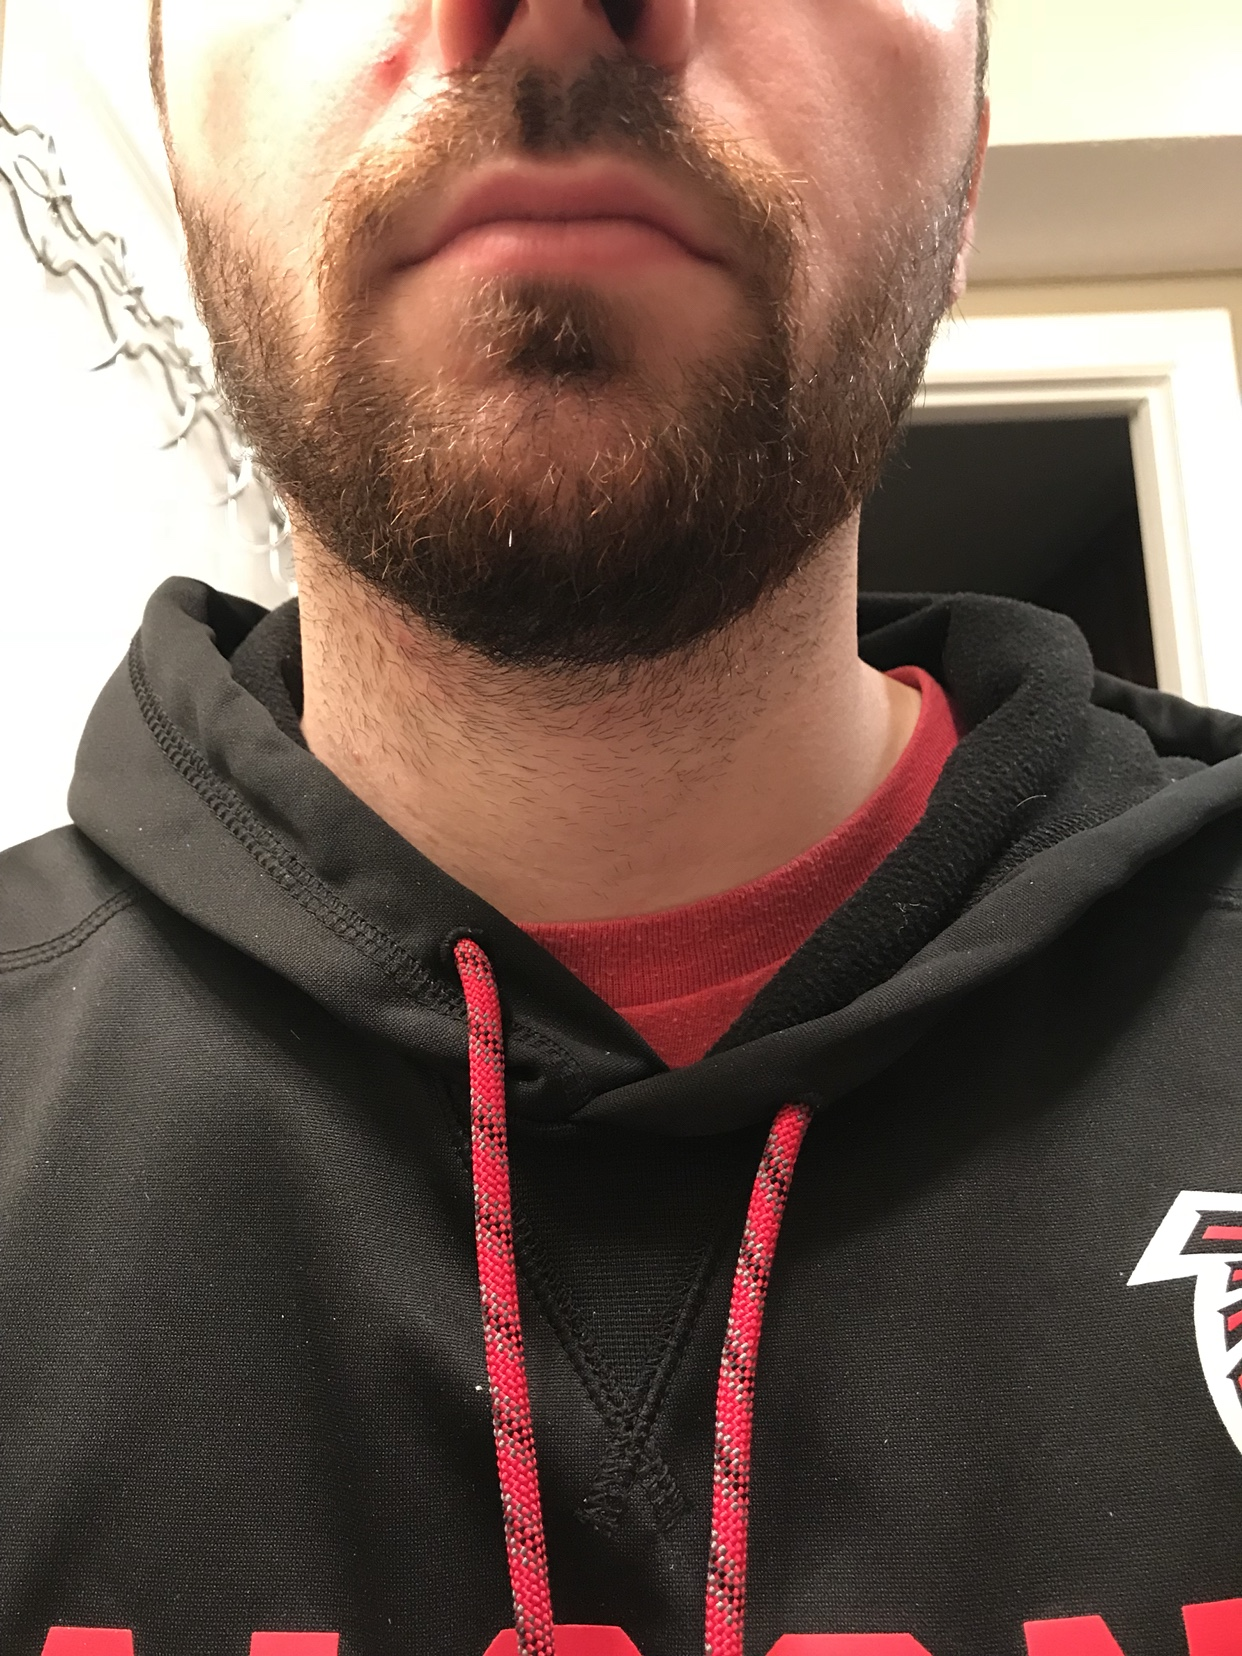 Trouble defining neckline - Beard Board